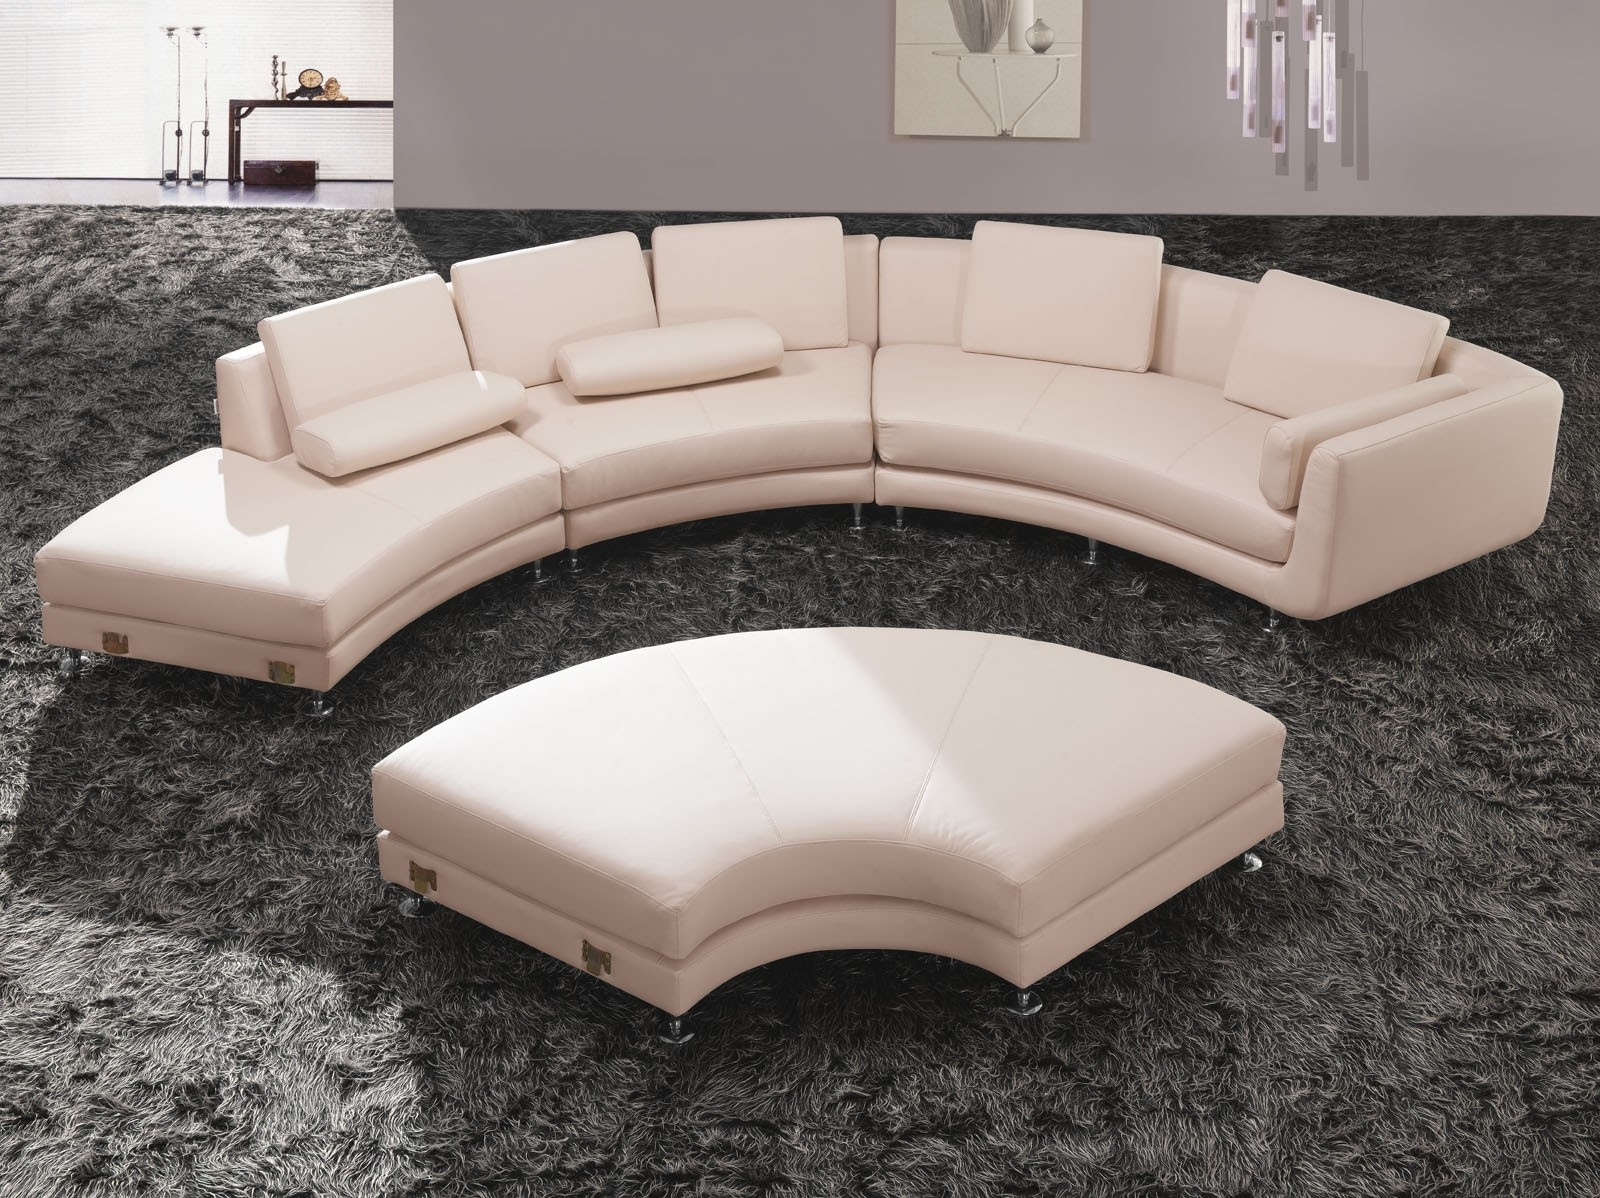 Most Current Circular Sofa Chairs Inside Sofa : Glamorous Round Sectional Sofa Bed Curved Leather Tufted (View 15 of 15)